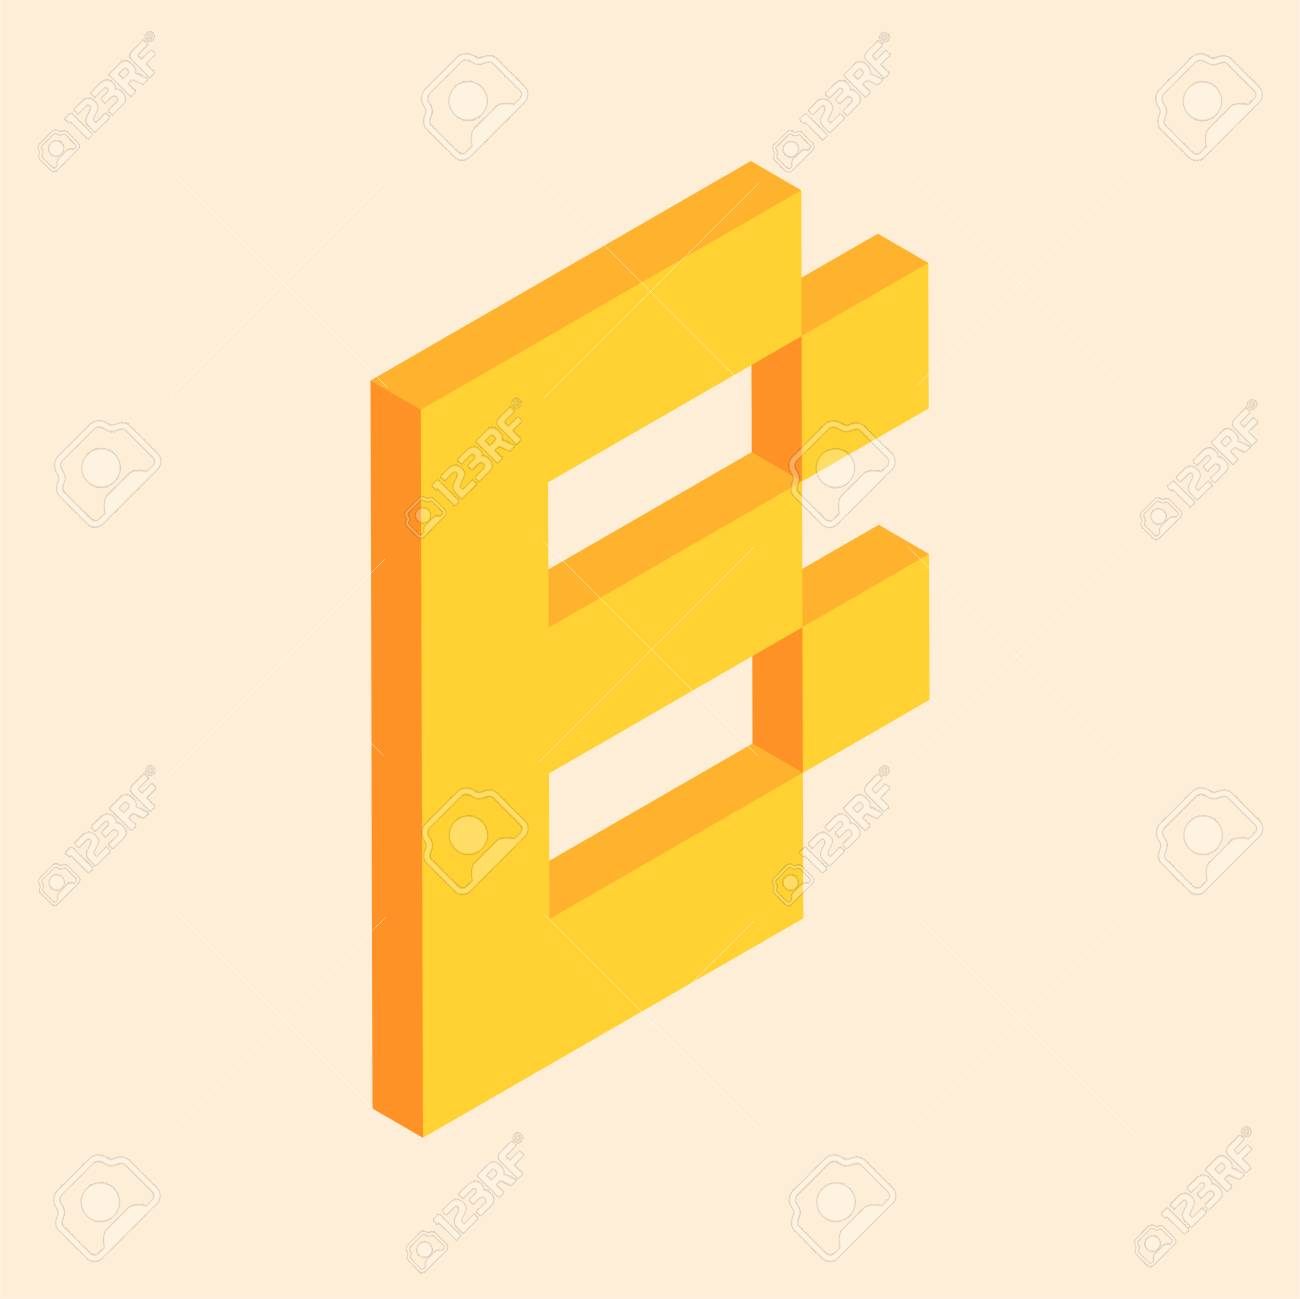 3d Colorful Isometric Pixel Art Alphabet Typeface Letter B Royalty Free Cliparts Vectors And Stock Illustration Image 102544737